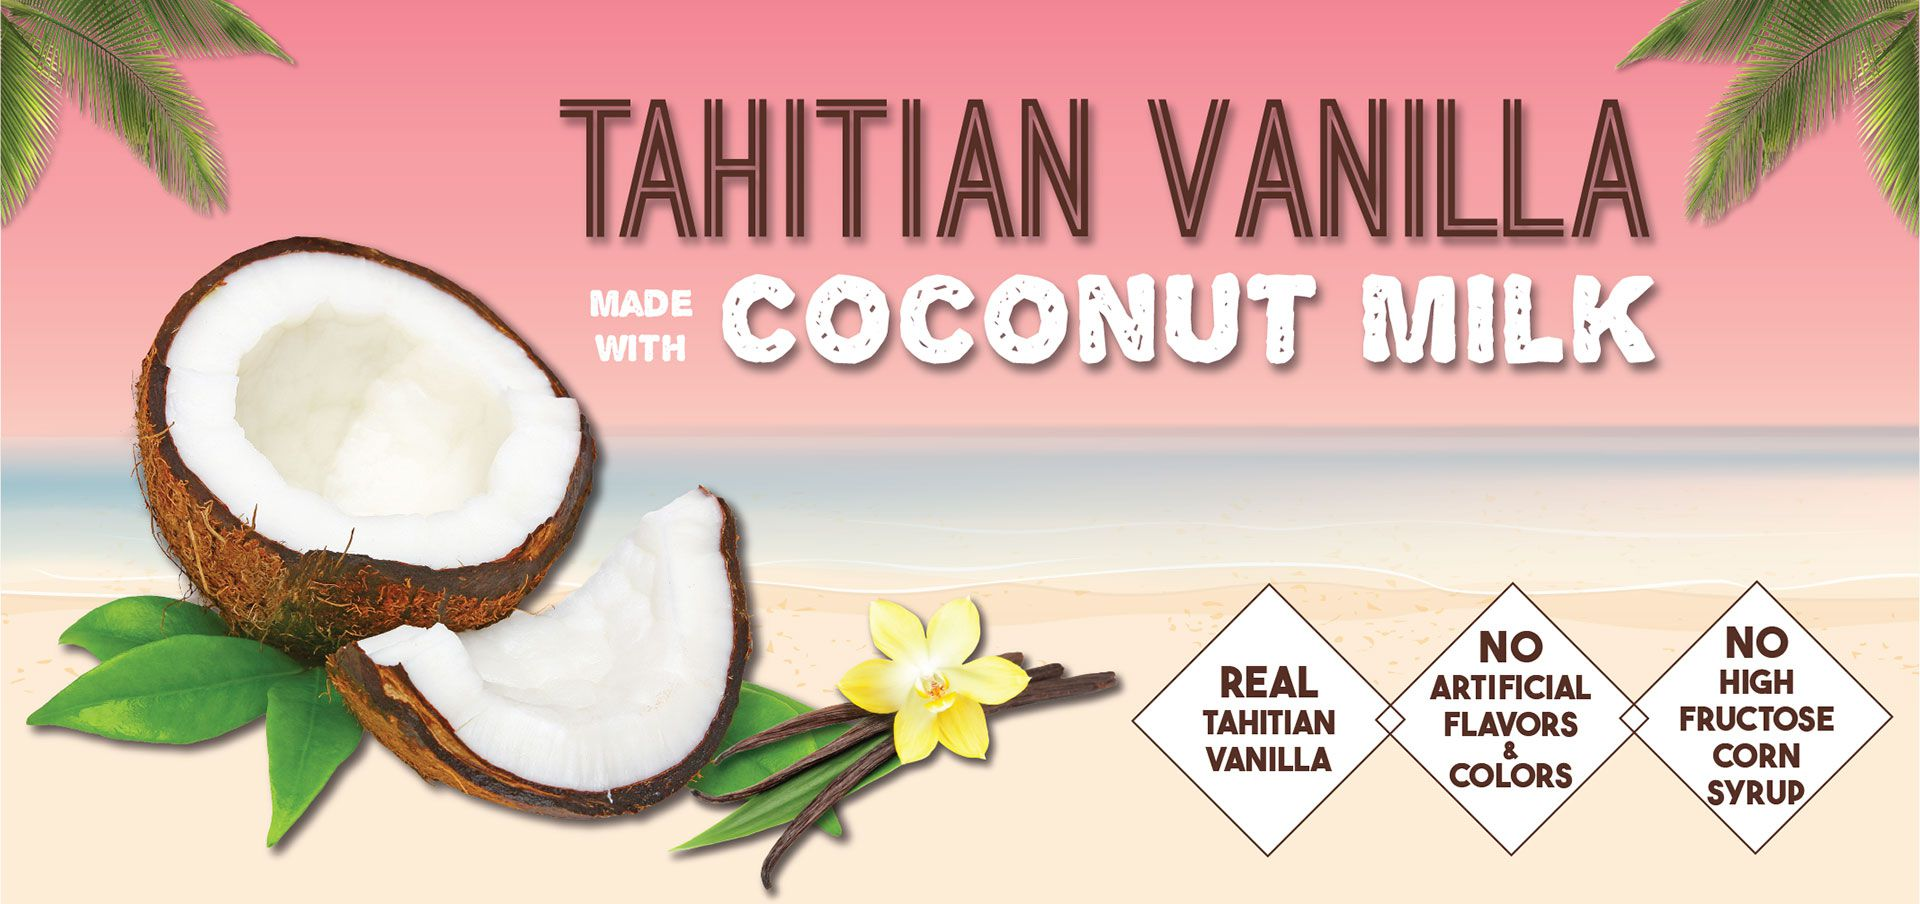 tahitian vanilla made with coconut milk label image